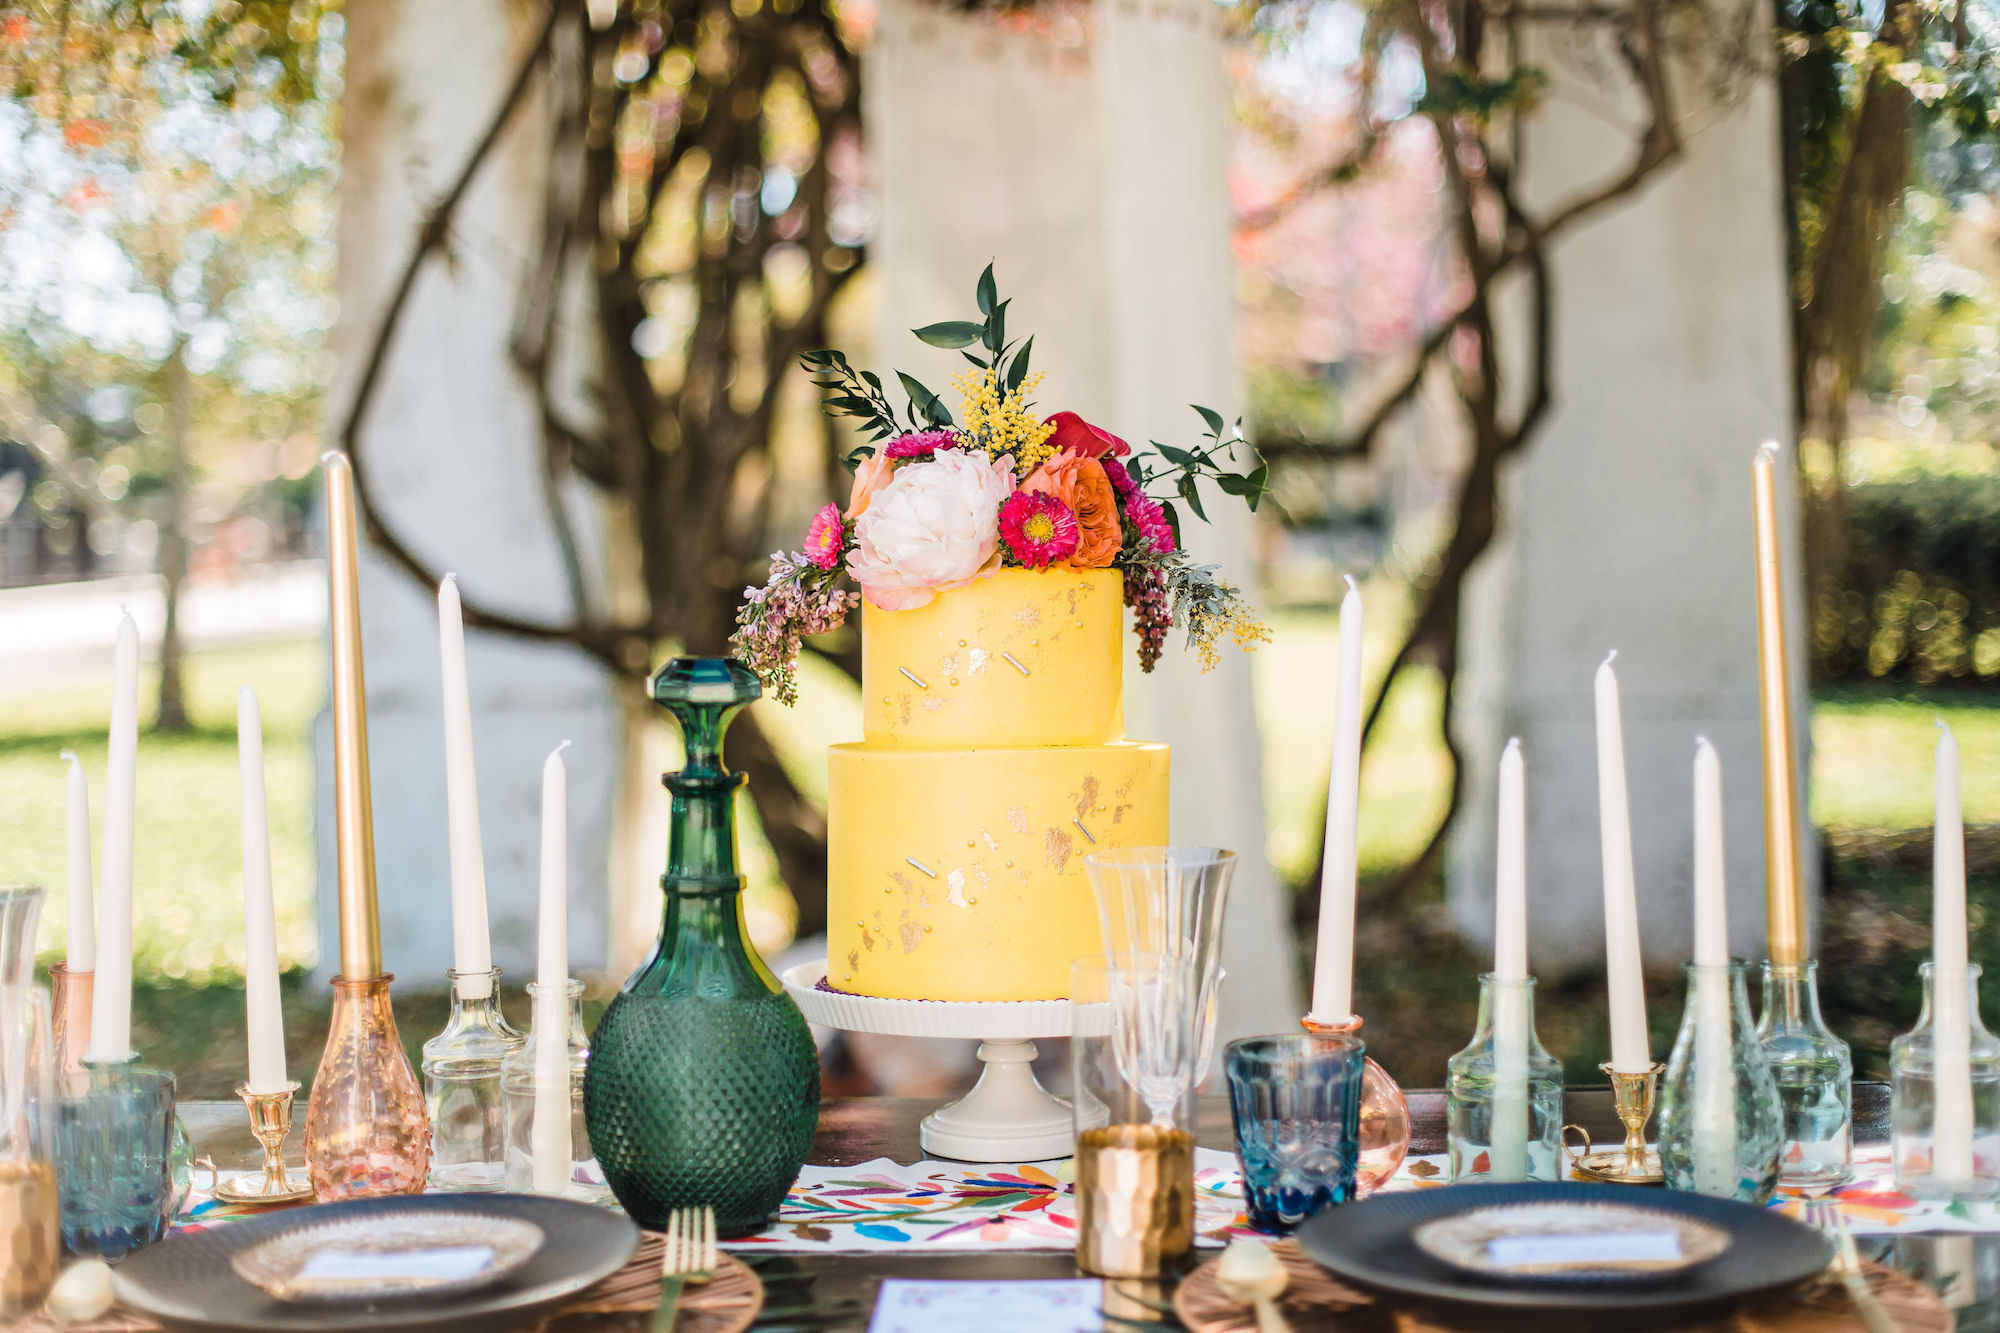 Outdoor Whimsical Wedding Reception Styled Shoot with Yellow Two Tiered Cake with Metallic Accent and Tropical Florals